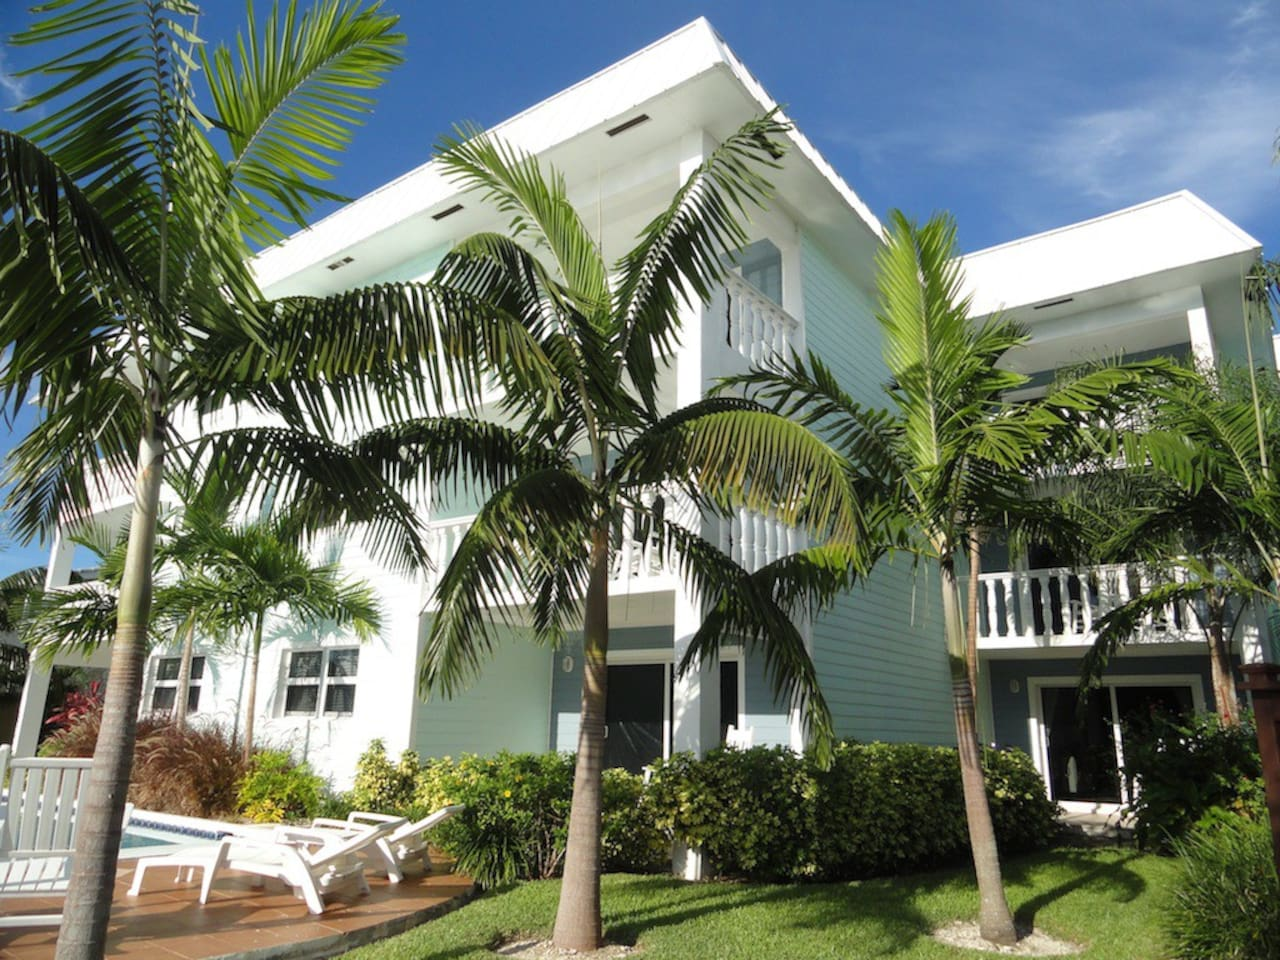 Beautiful Bahamian Style Building with lush landscaping